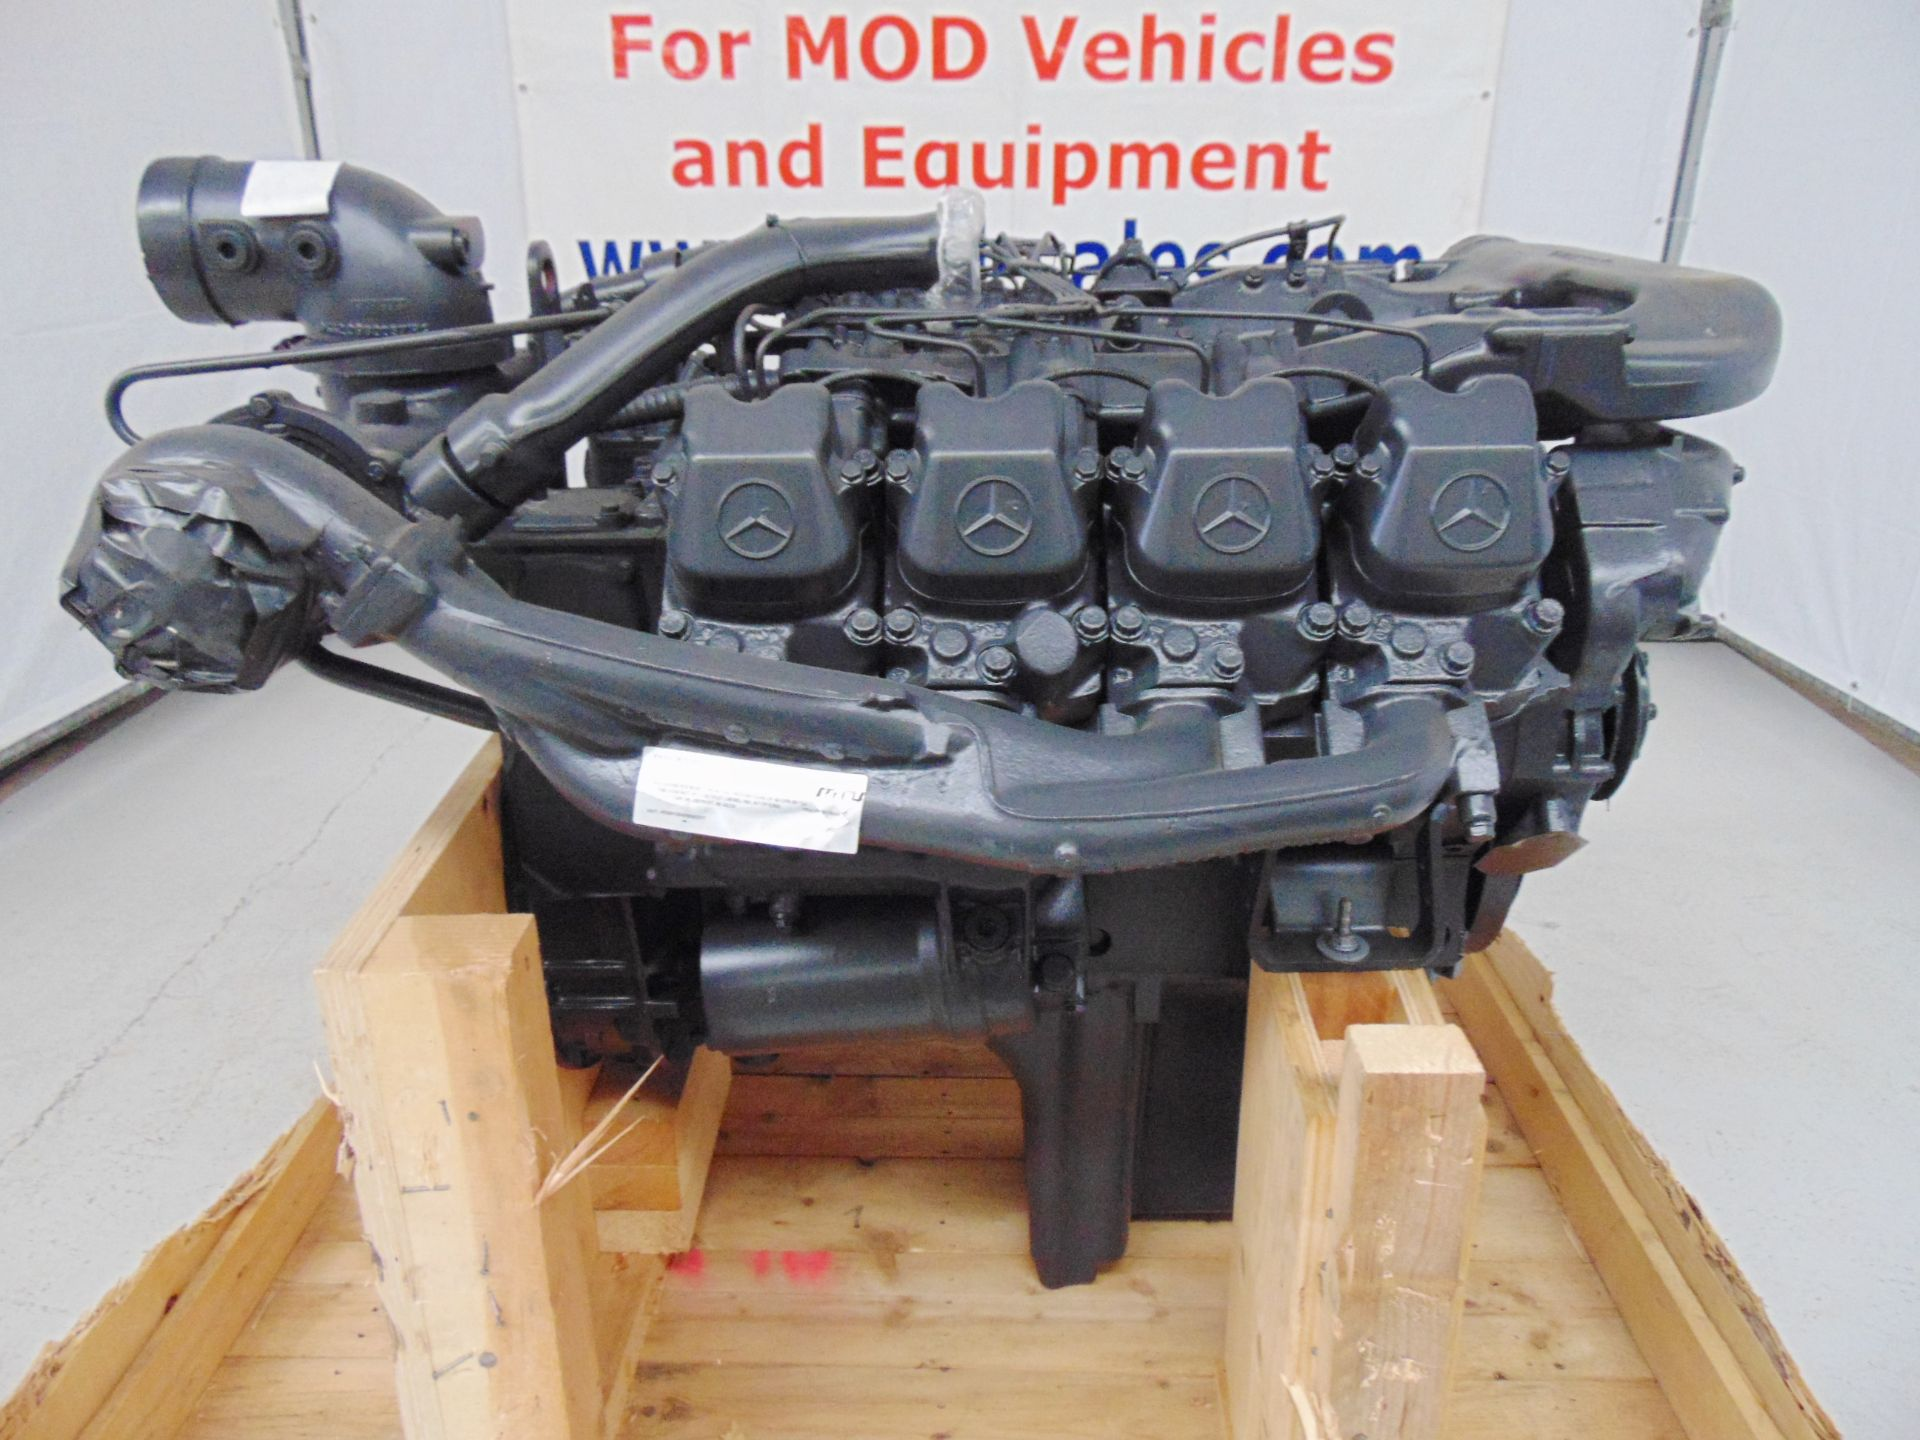 Lot 7 - Factory Reconditioned Mercedes-Benz OM402LA V8 Twin Turbo Diesel Engine